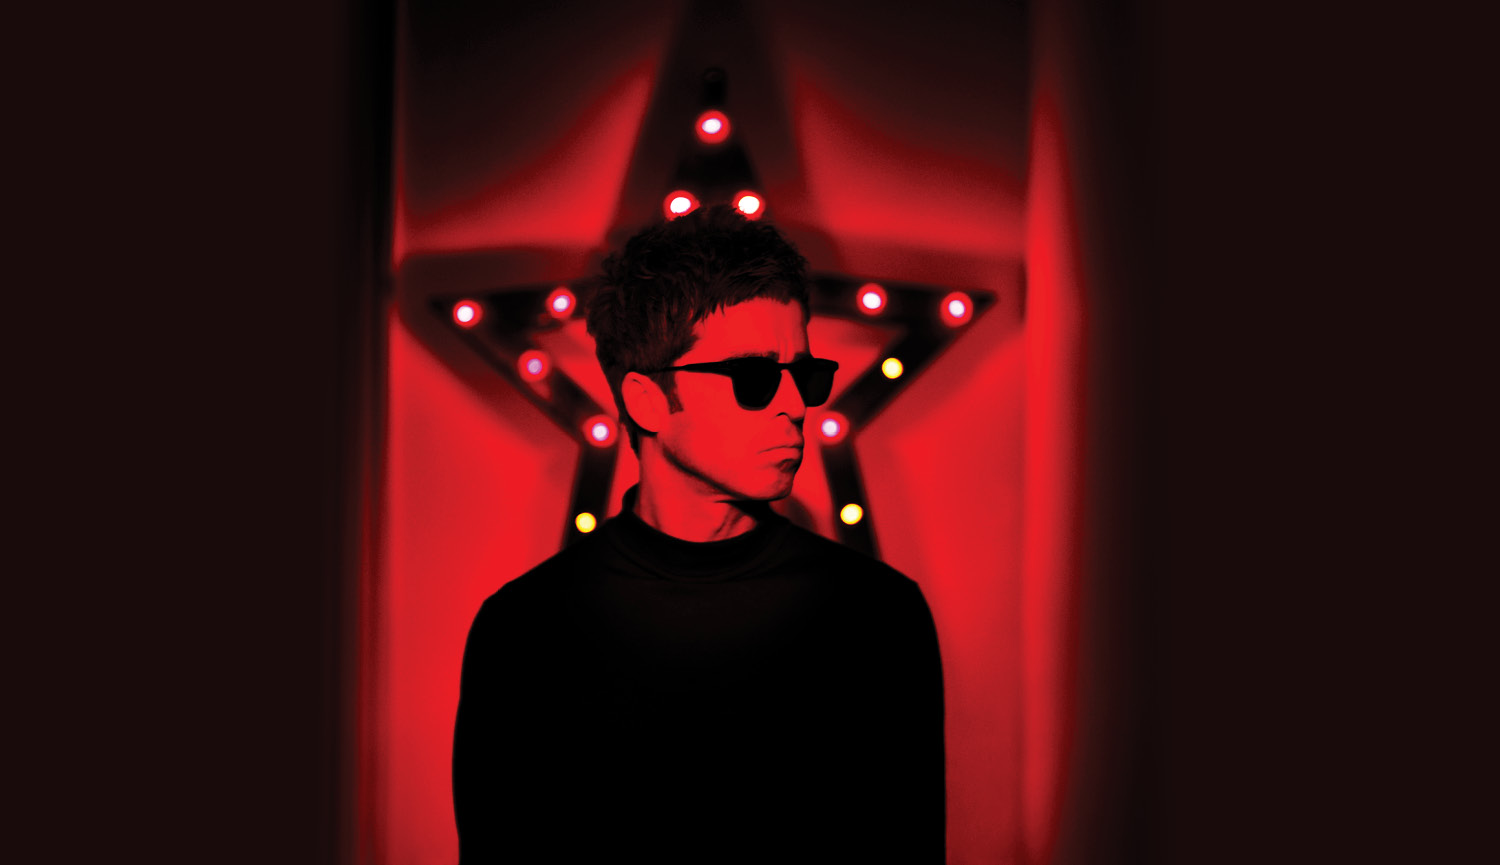 noel gallagher ancienne belgique 2018 Noel Gallagher's High Flying Birds   European Tour 2018 | Forest  noel gallagher ancienne belgique 2018